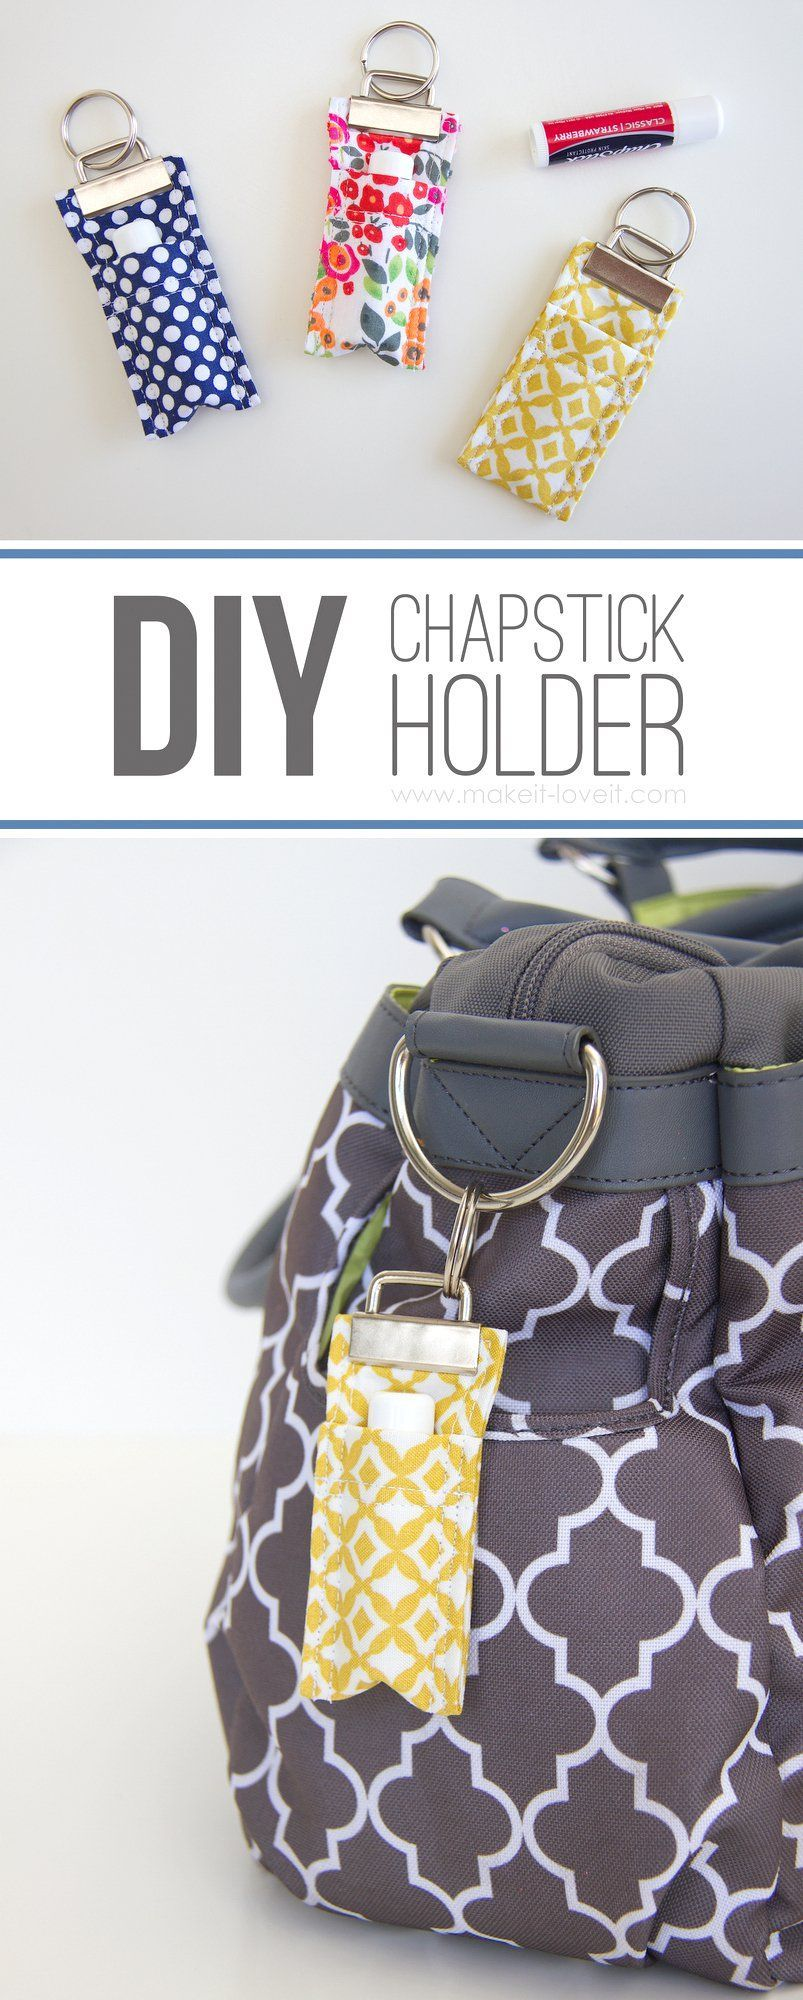 35+ Sewing crafts to sell on etsy ideas